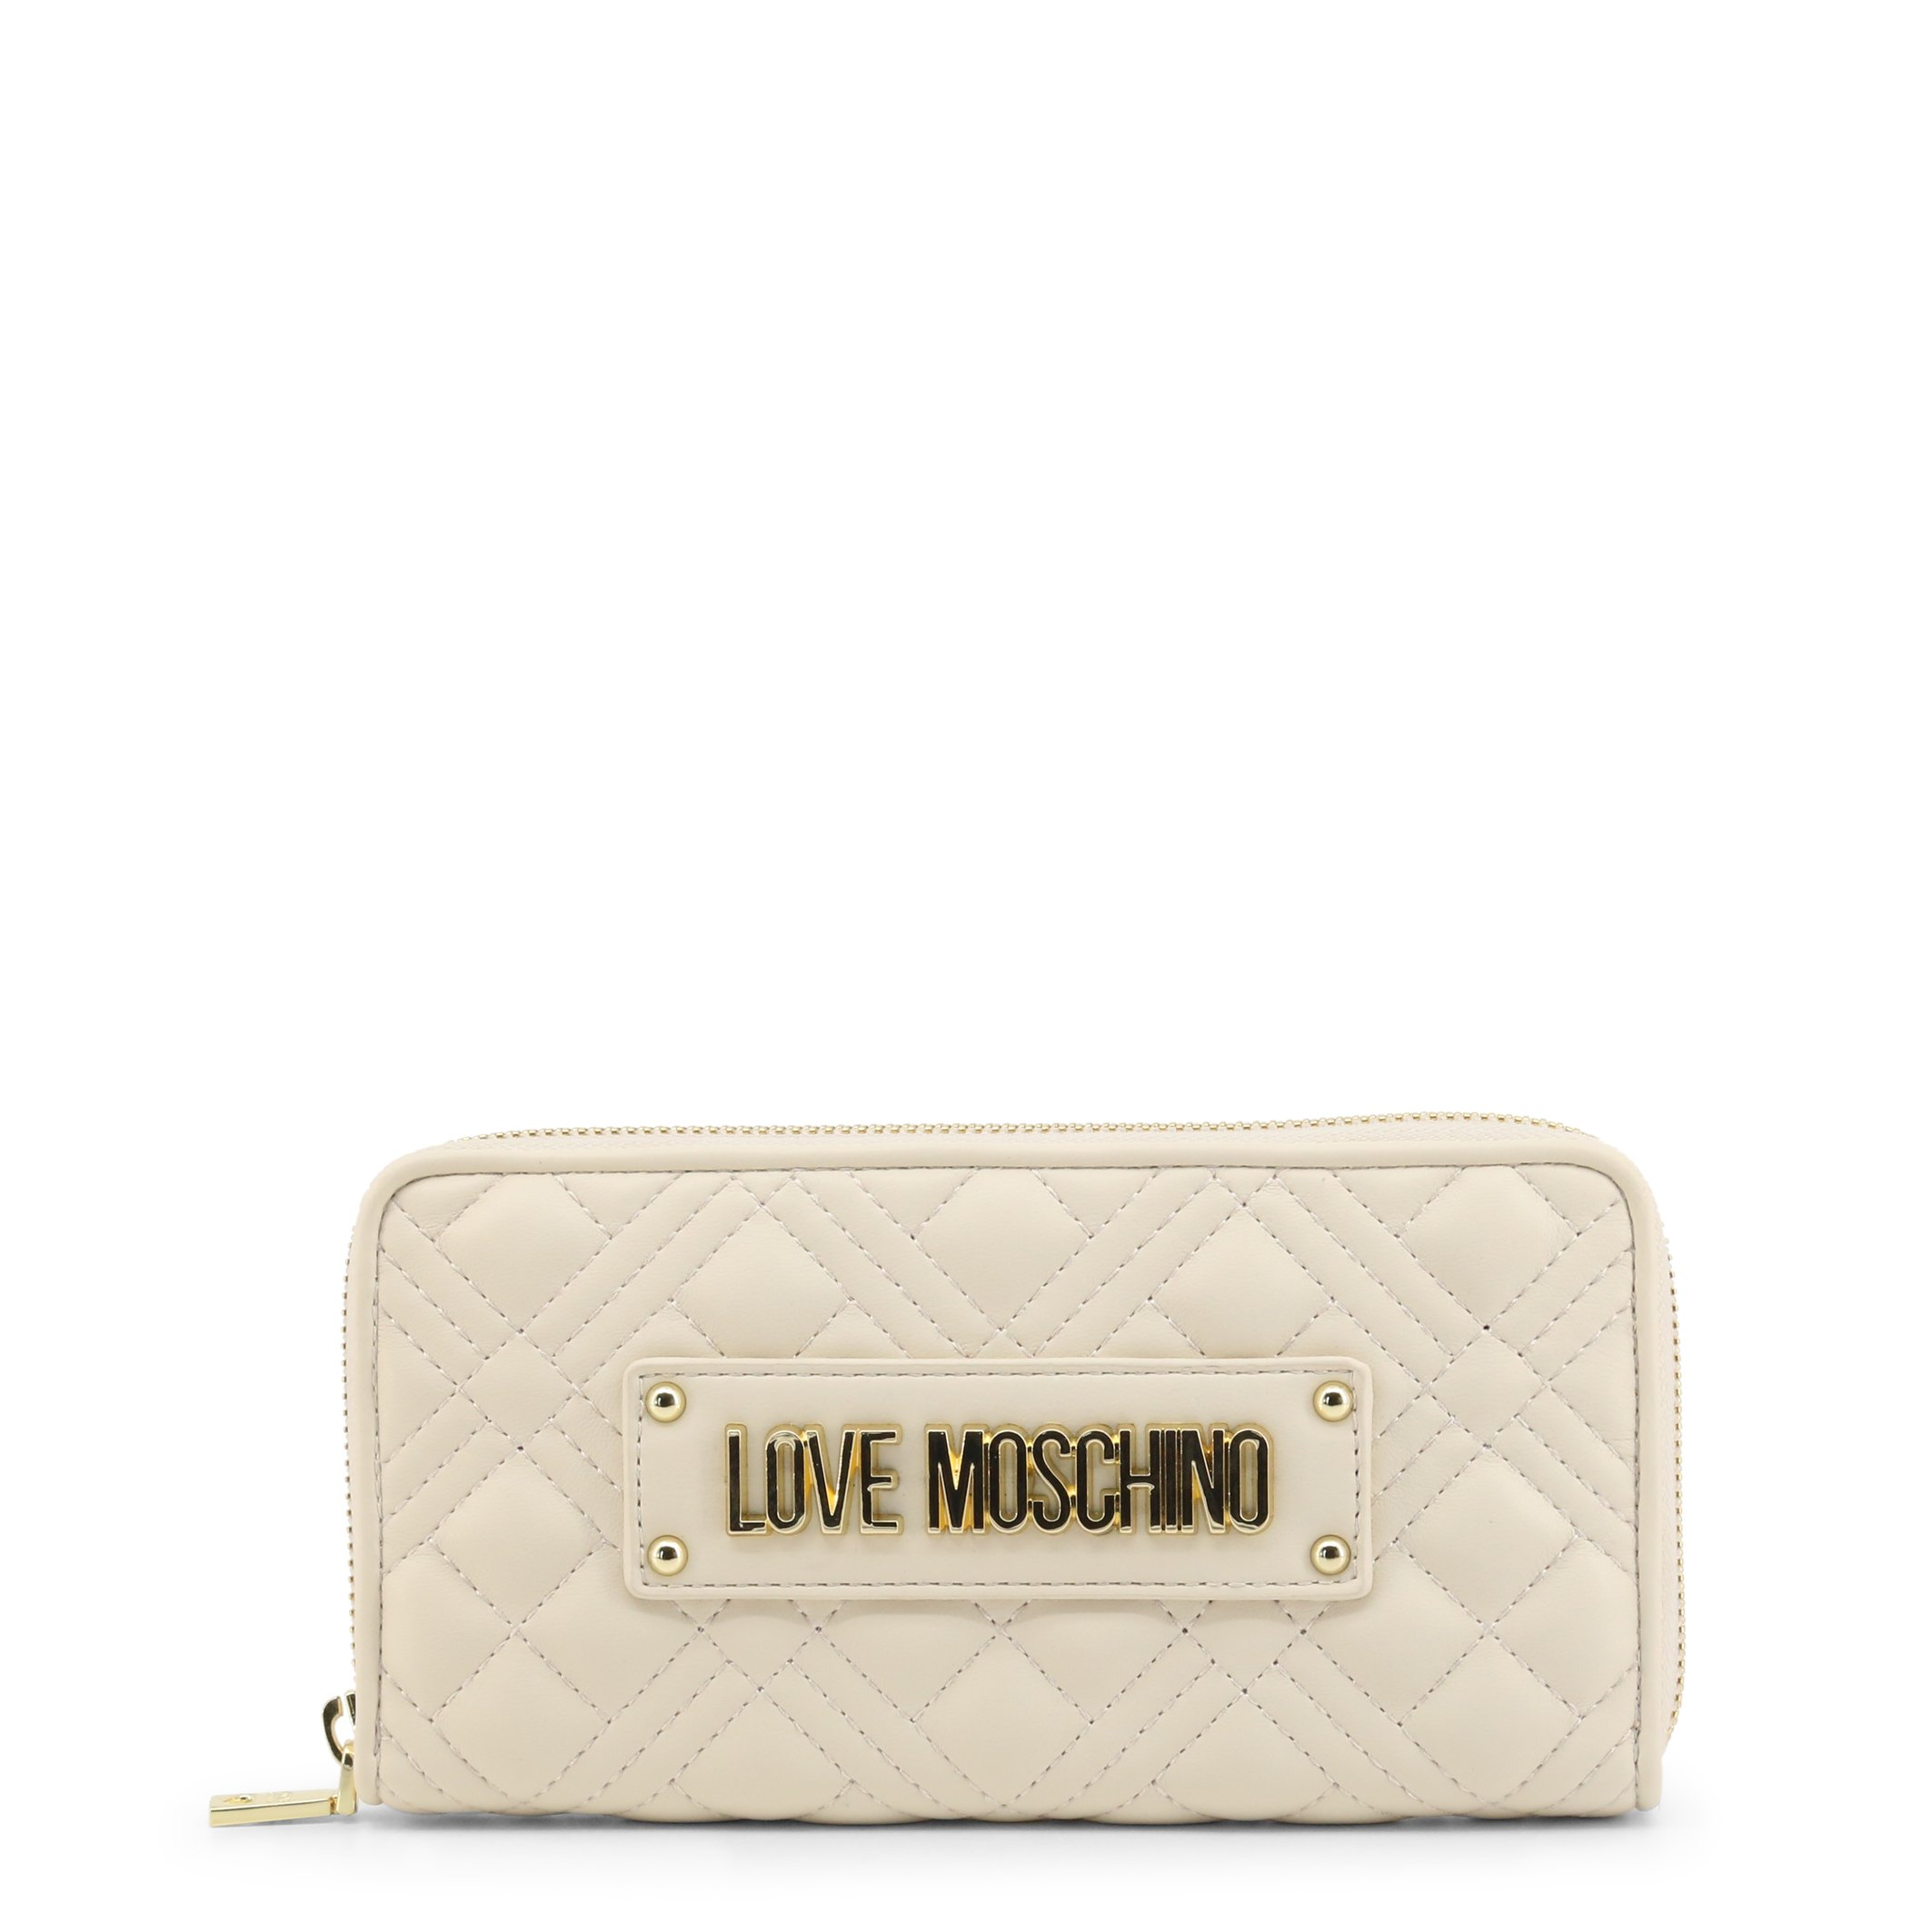 Love Moschino Women's Wallet Various Colours JC5627PP0CKA0 - white NOSIZE